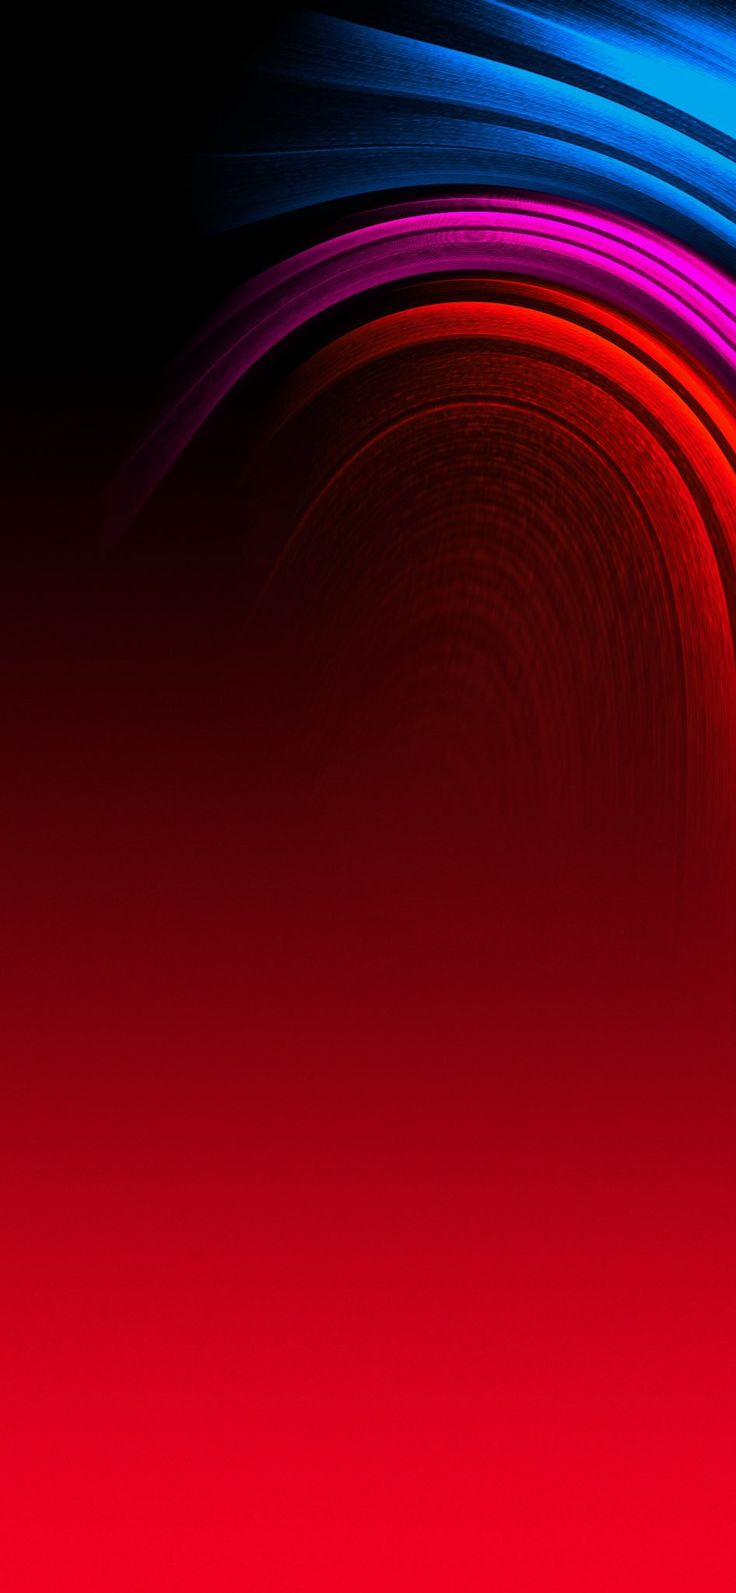 Abstract HD Wallpapers 92534967332013071 5